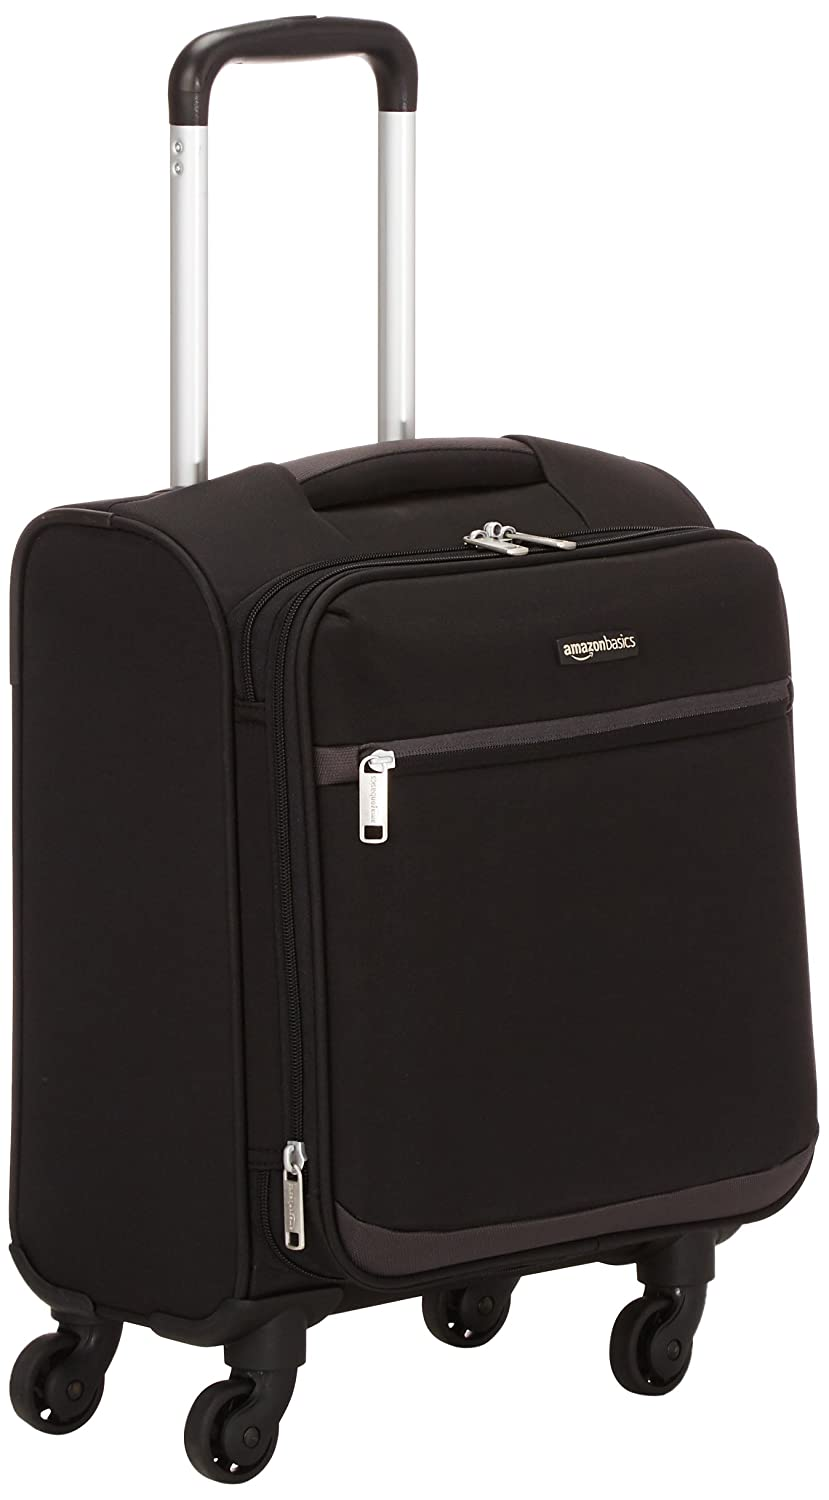 AmazonBasics Softside Spinner Luggage, 18-inch Carry-on/Cabin Size, Black